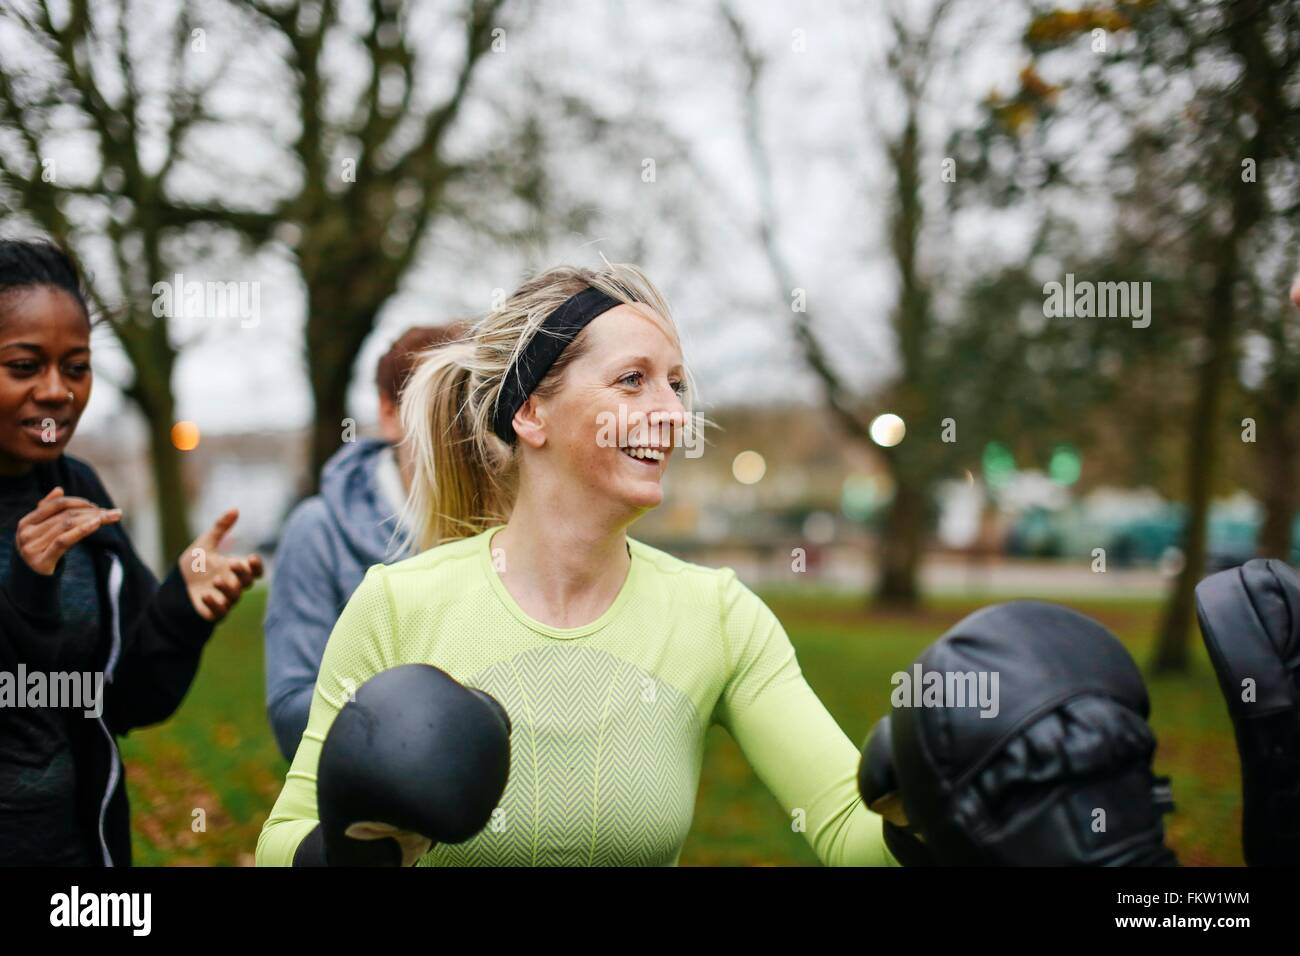 Female boxers wearing boxing gloves training in park - Stock Image